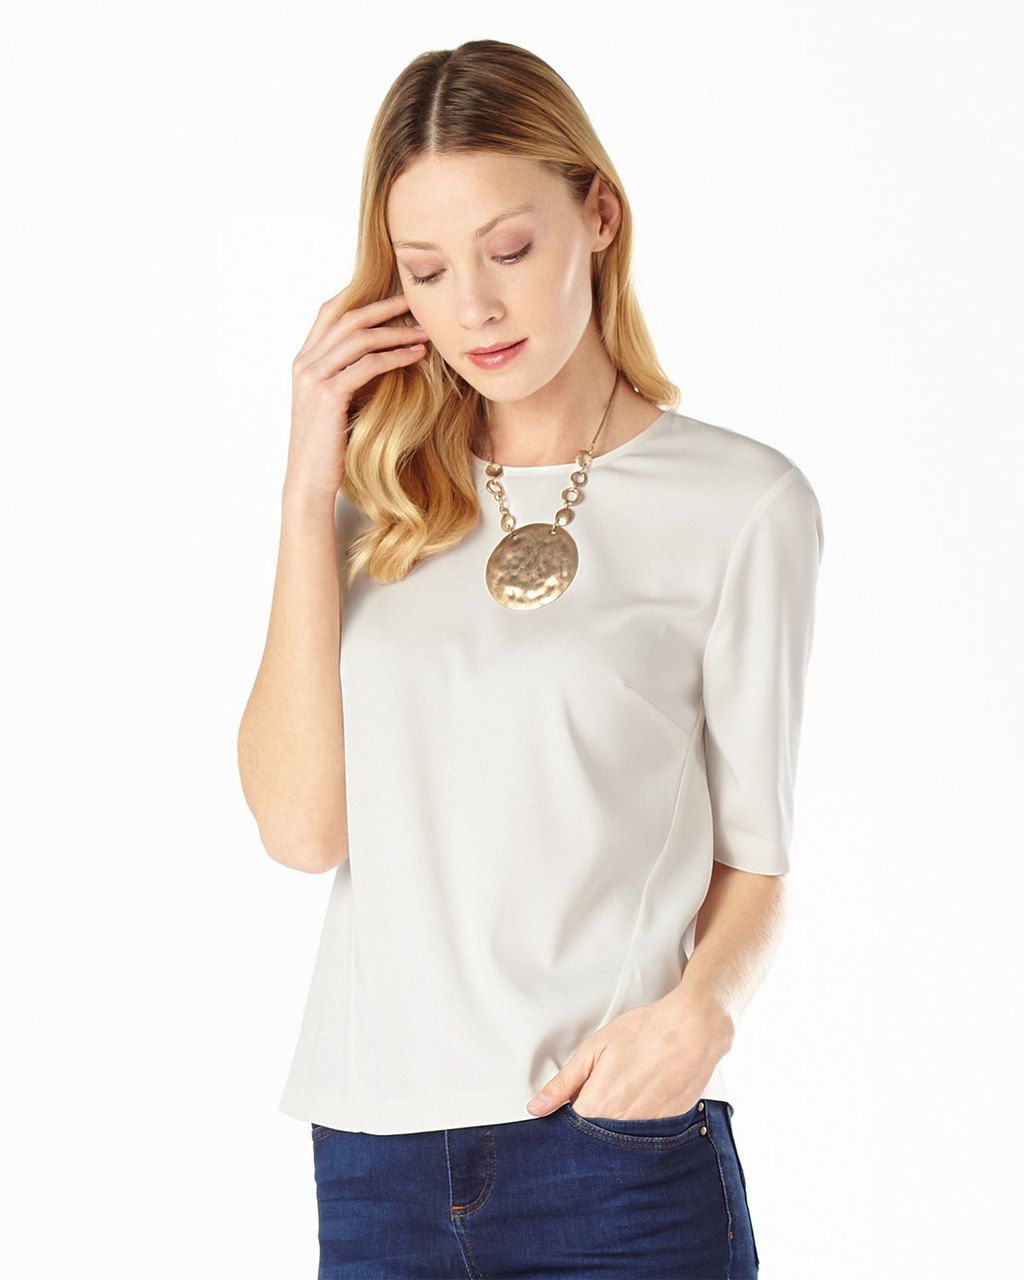 Annika Shell Top - pattern: plain; predominant colour: ivory/cream; occasions: casual, creative work; length: standard; style: top; fibres: polyester/polyamide - stretch; fit: body skimming; neckline: crew; sleeve length: half sleeve; sleeve style: standard; pattern type: fabric; texture group: jersey - stretchy/drapey; season: s/s 2016